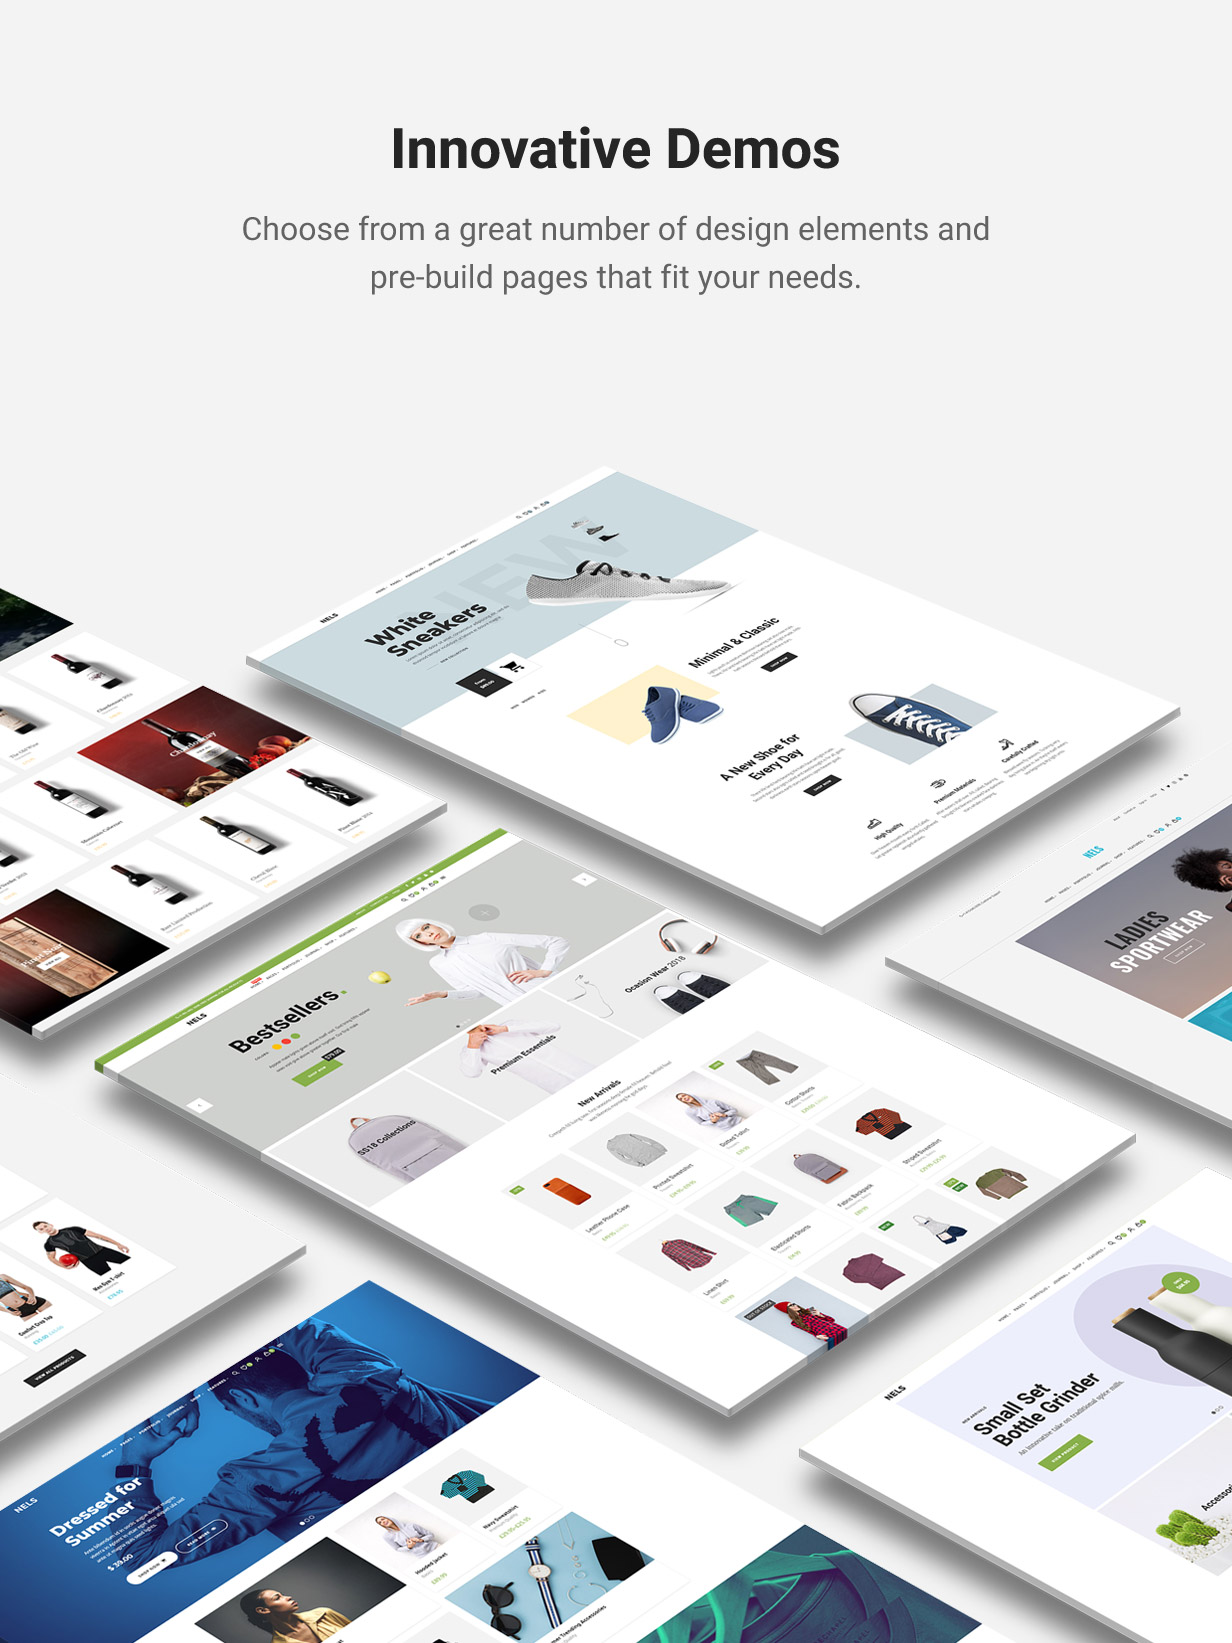 Nels - An Exquisite eCommerce WordPress Theme - 2